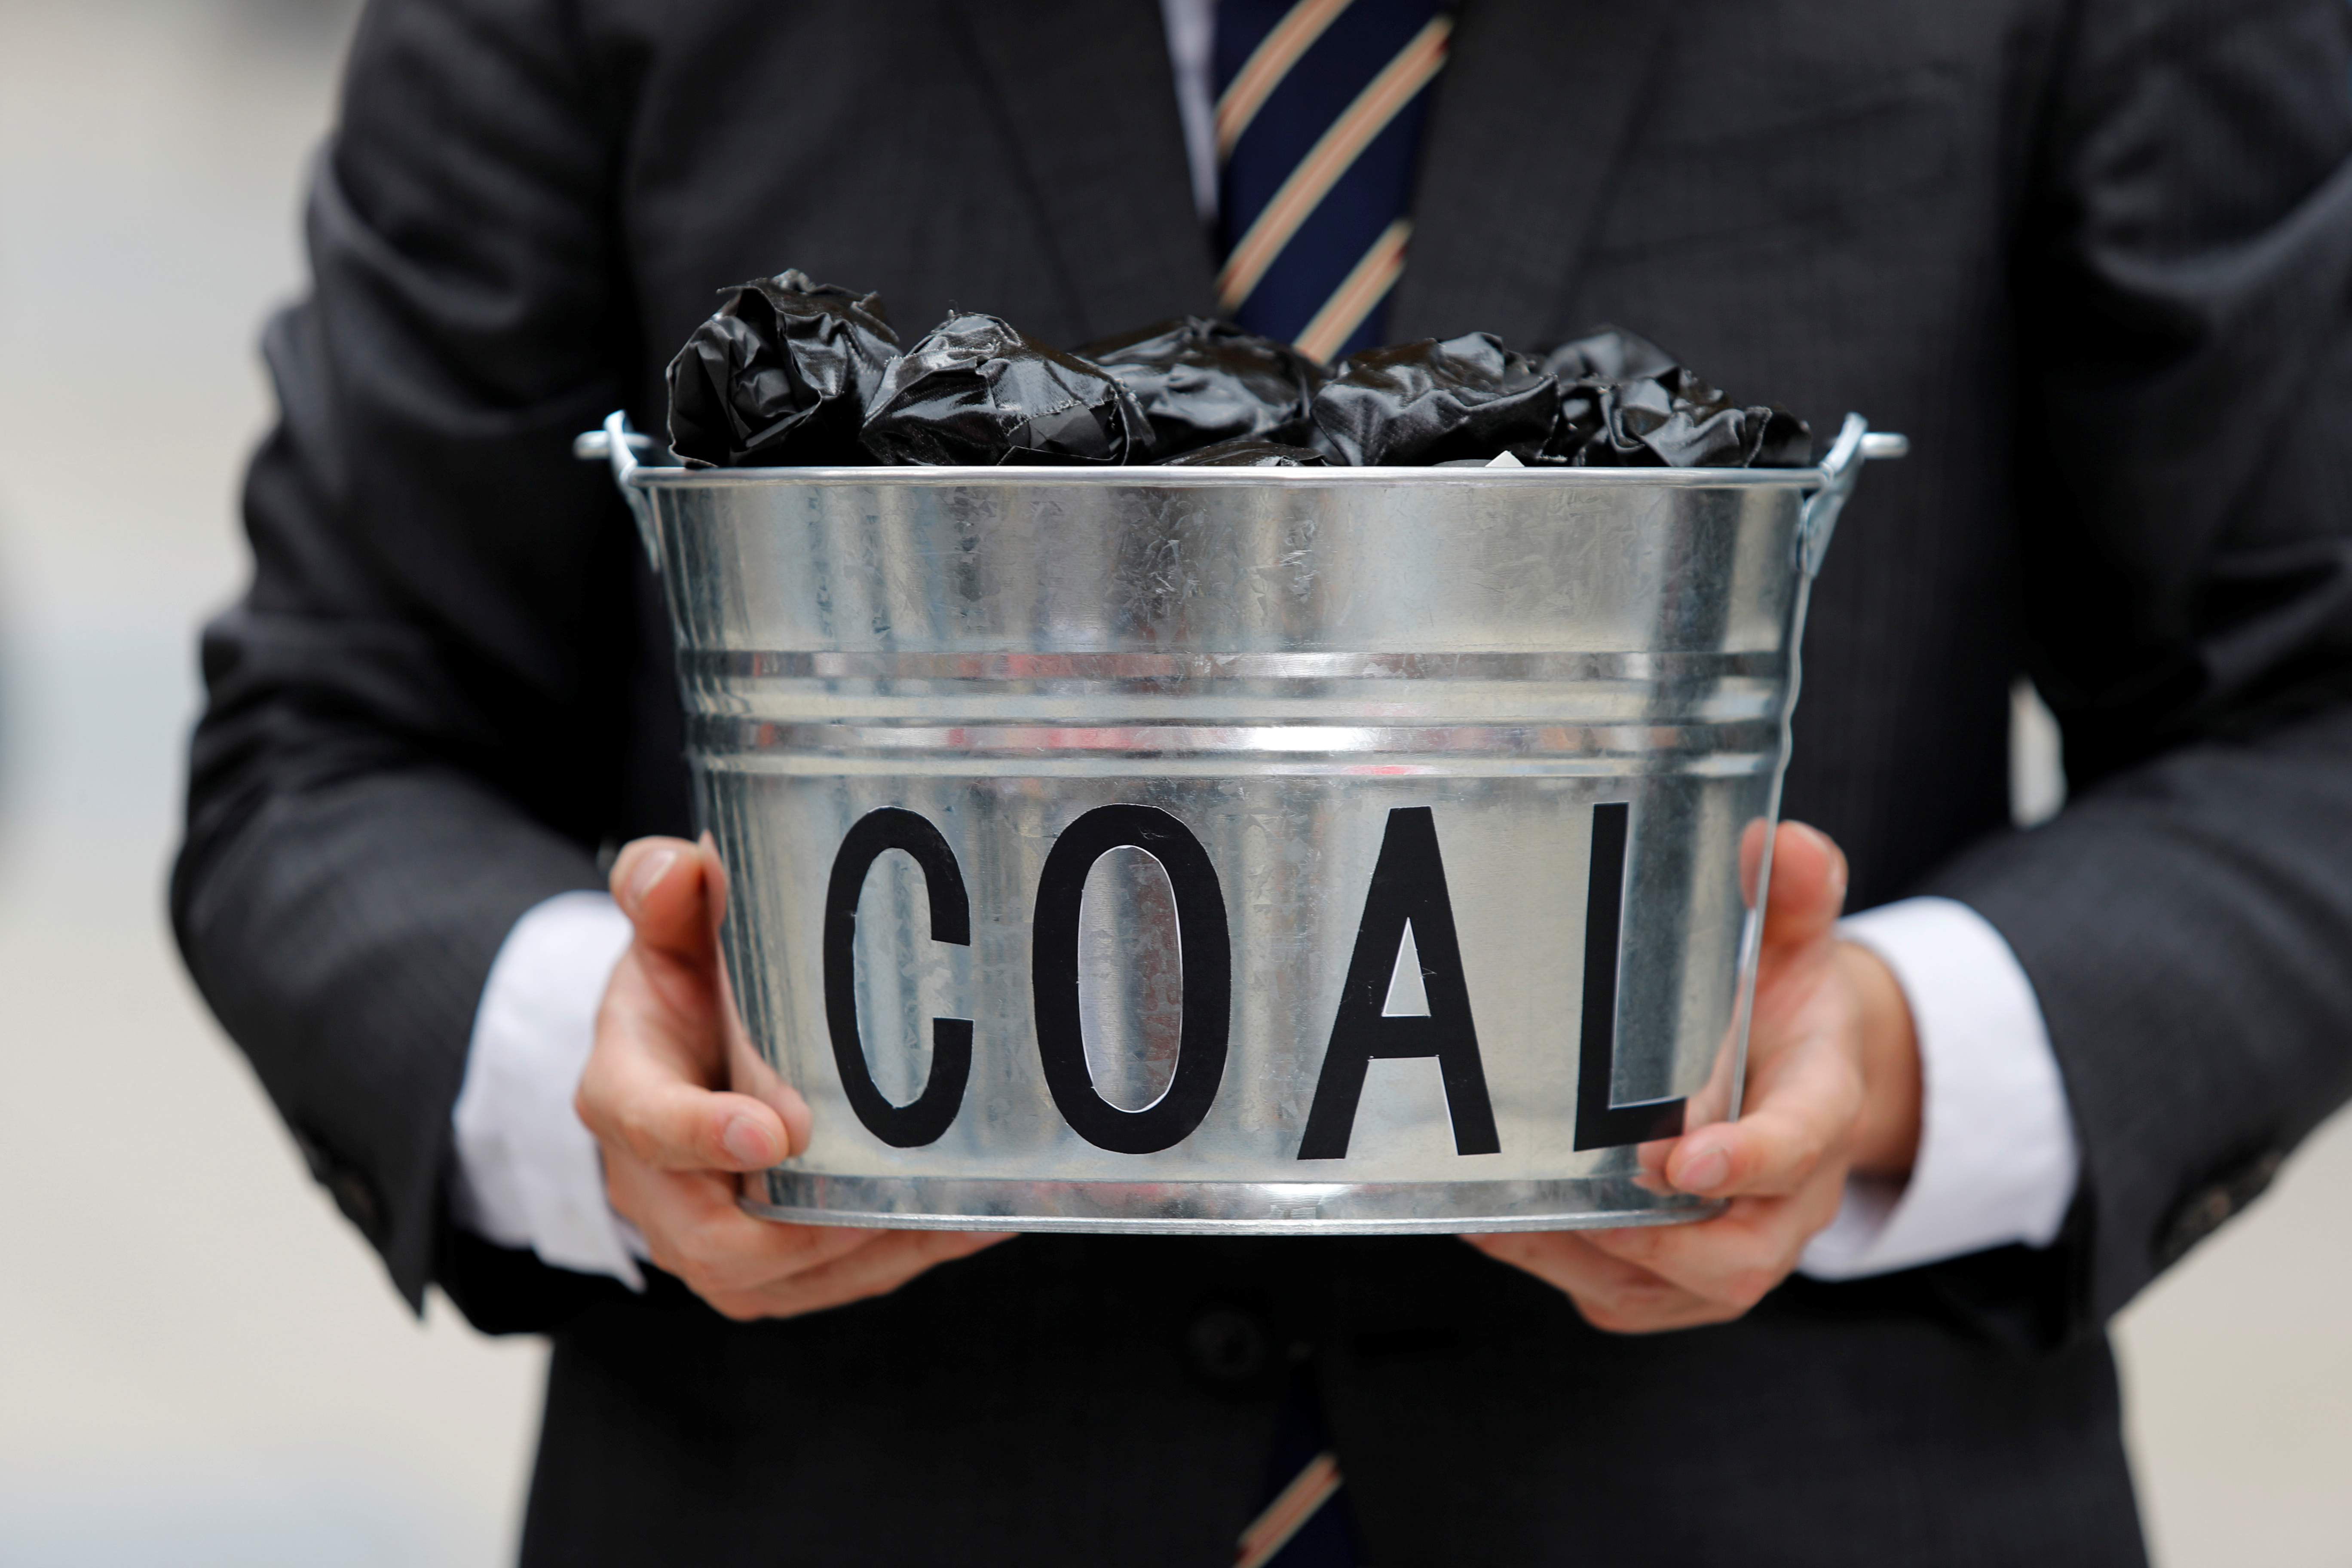 A protester holds a bucket of coal during a demonstration demanding Japan to stop supporting coal at home and overseas, at the G20 Summit in Osaka, Japan, June 28, 2019. REUTERS/Jorge Silva